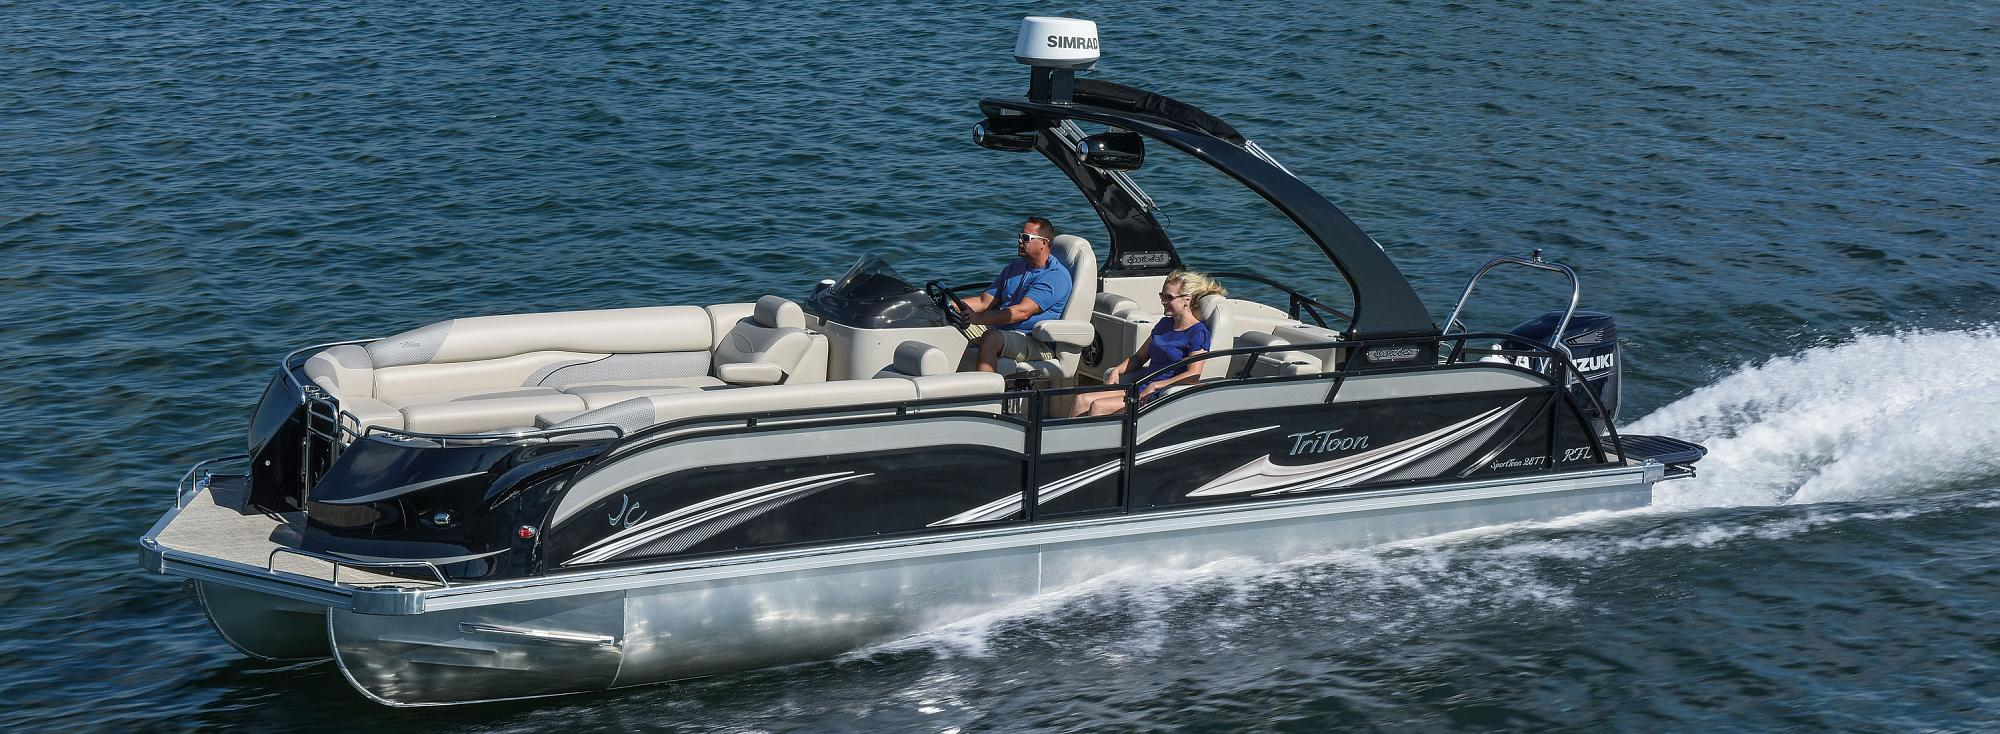 Jc tritoon marine pontoon boats for Pontoon boat without motor for sale